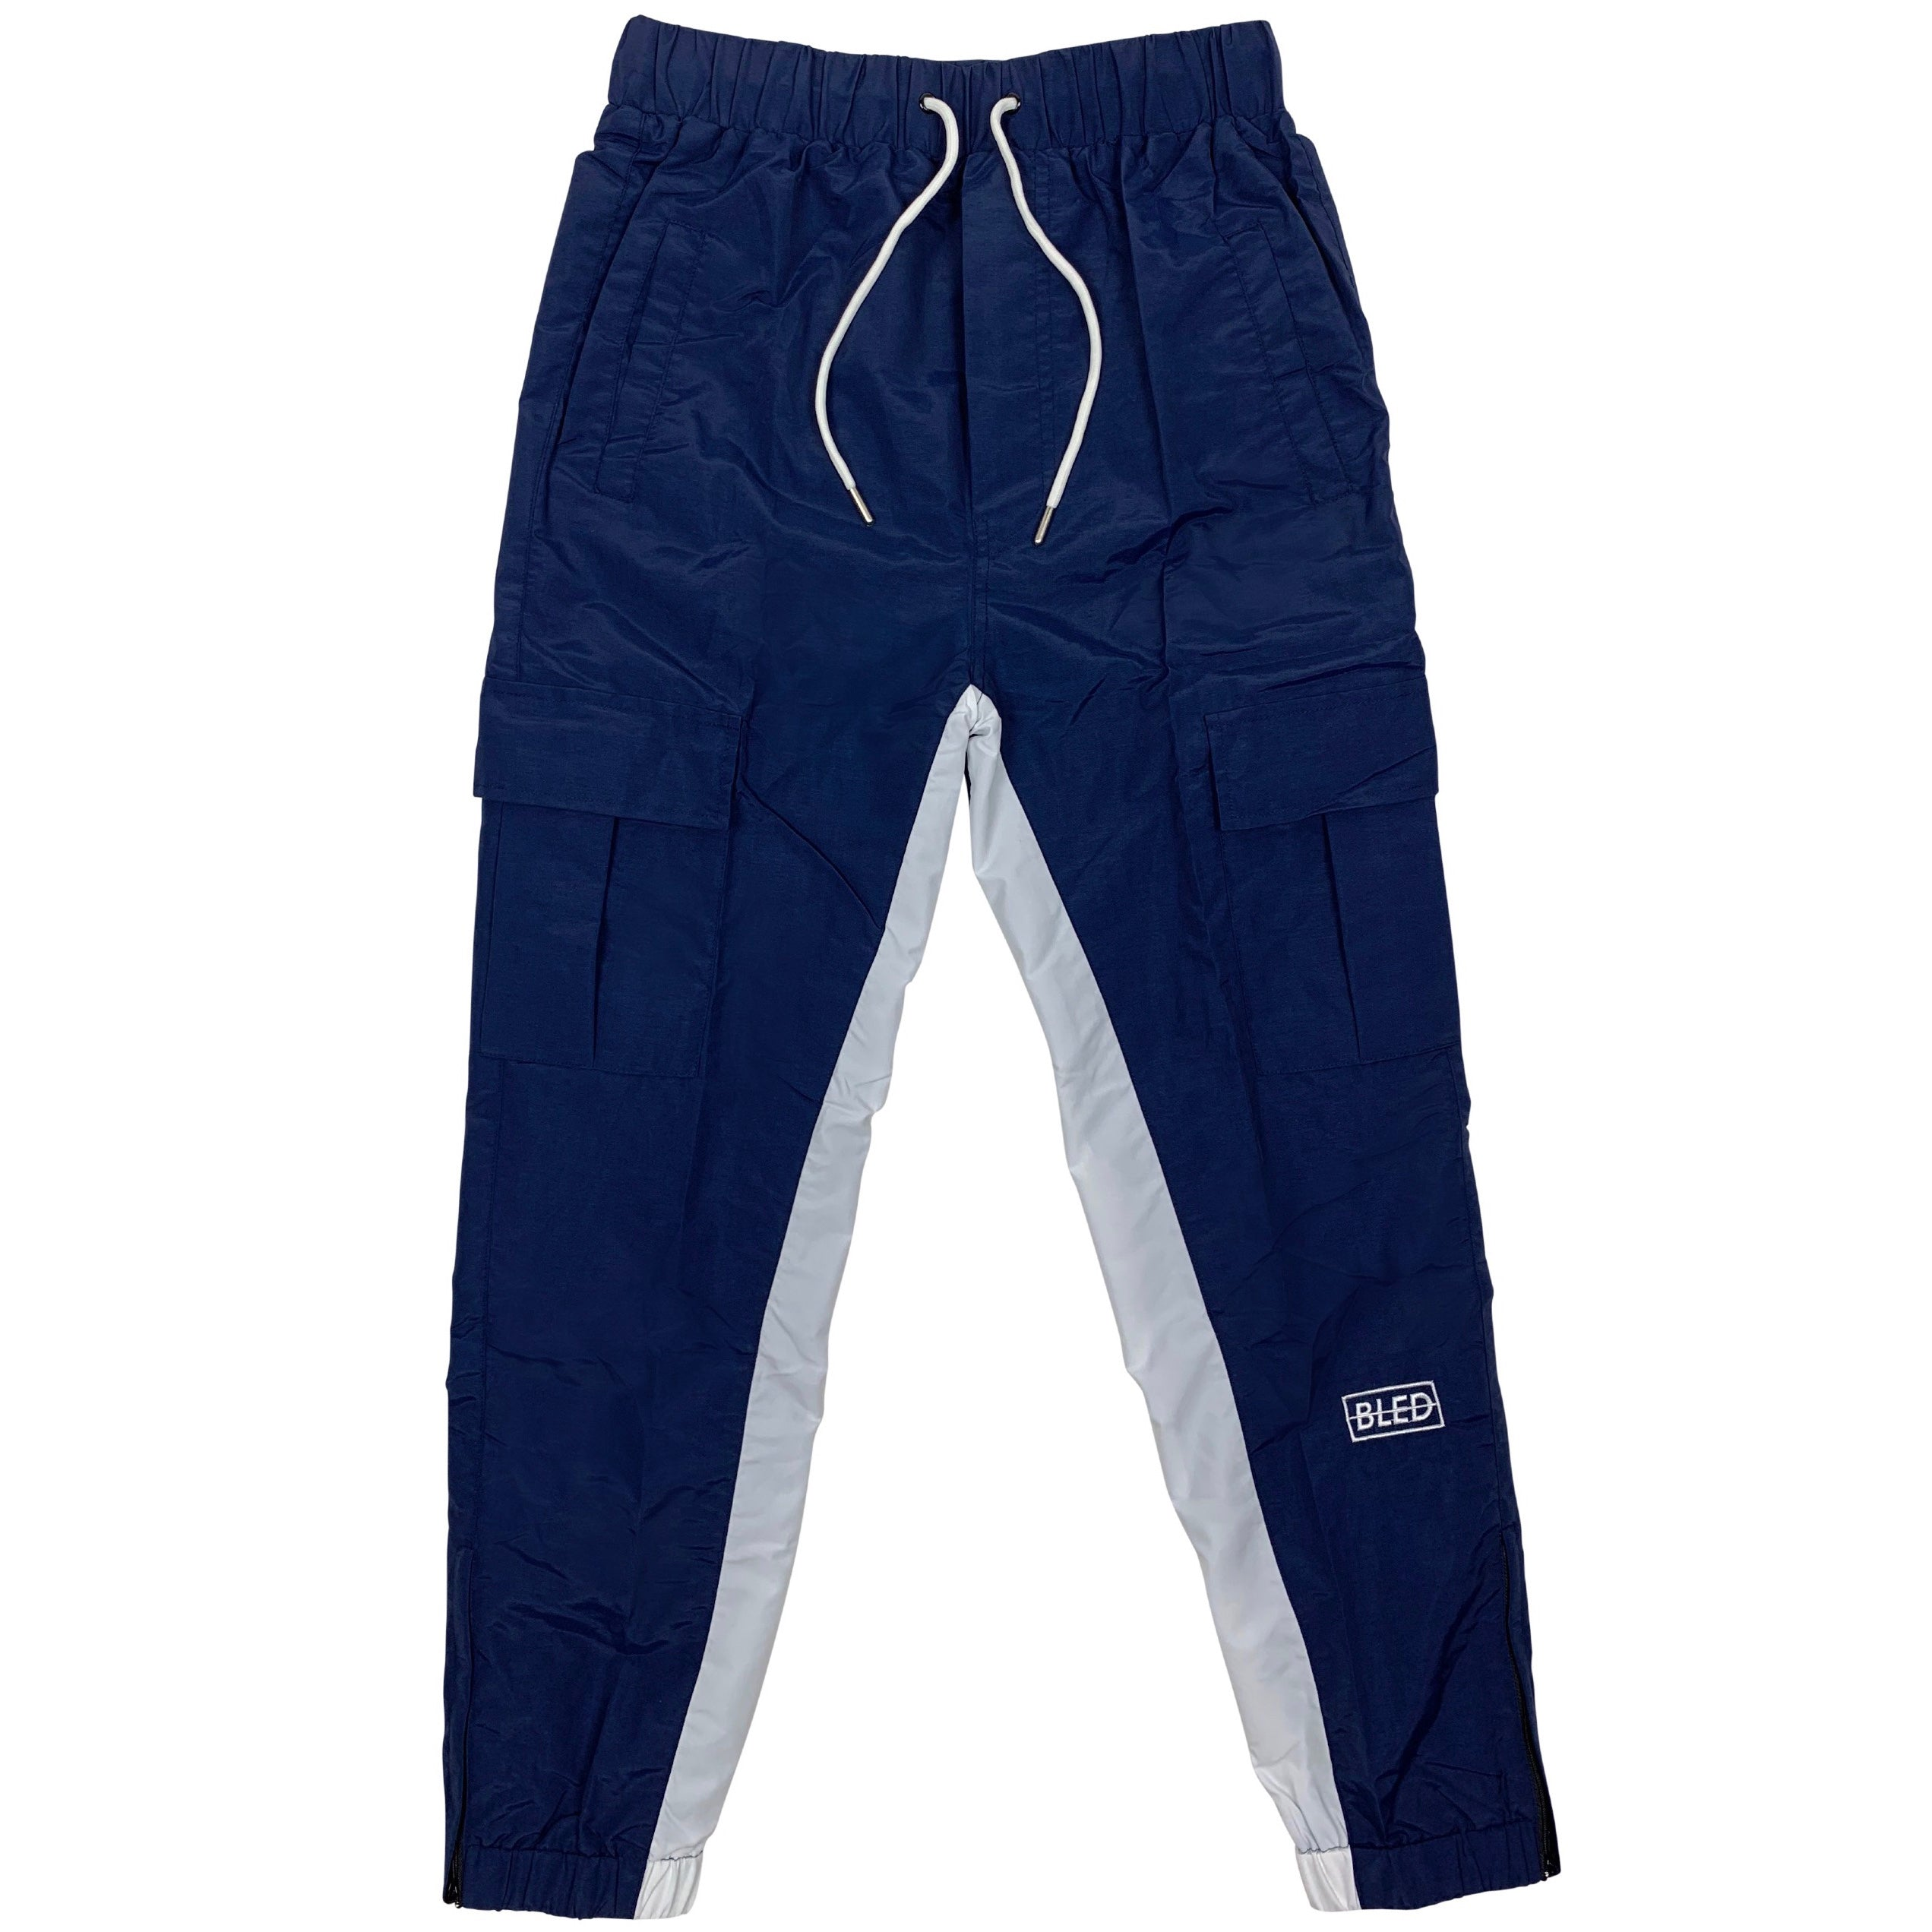 bled navy blue track pant streetwear hype clothing bledwear fashion grailed hypebeast